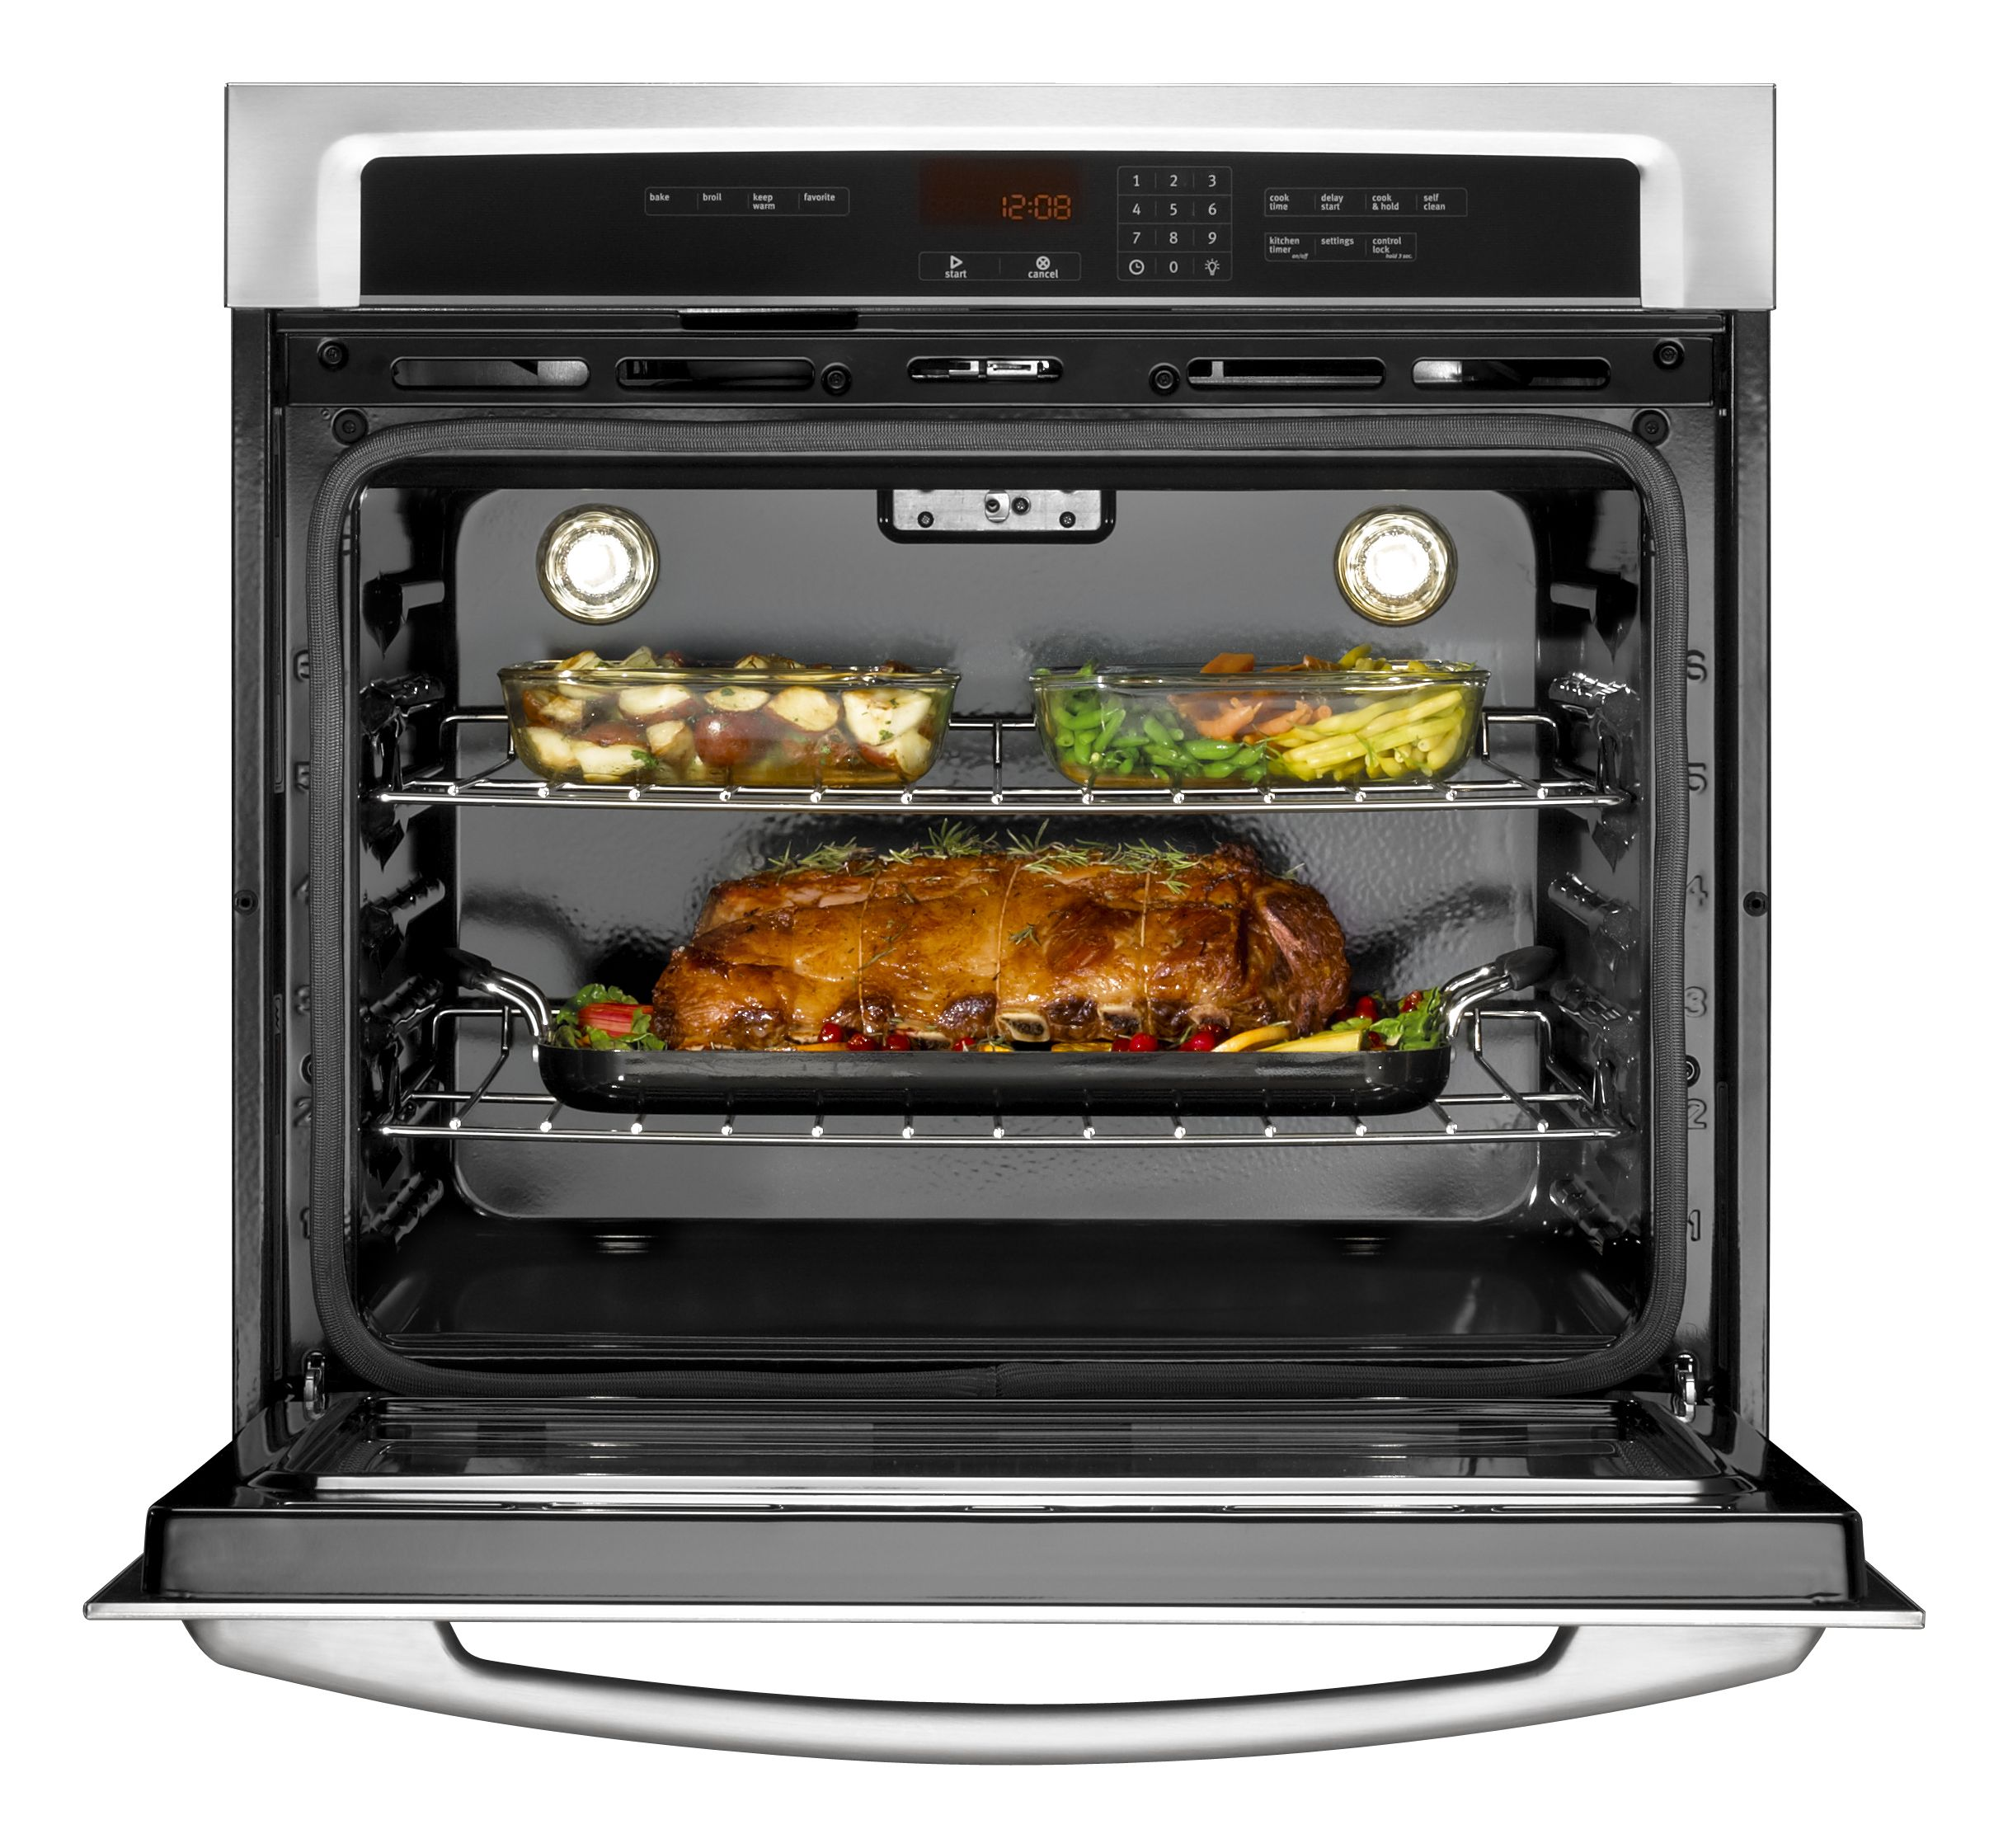 "Maytag 30"" Electric Wall Oven w/ FIT system - Stainless Steel"